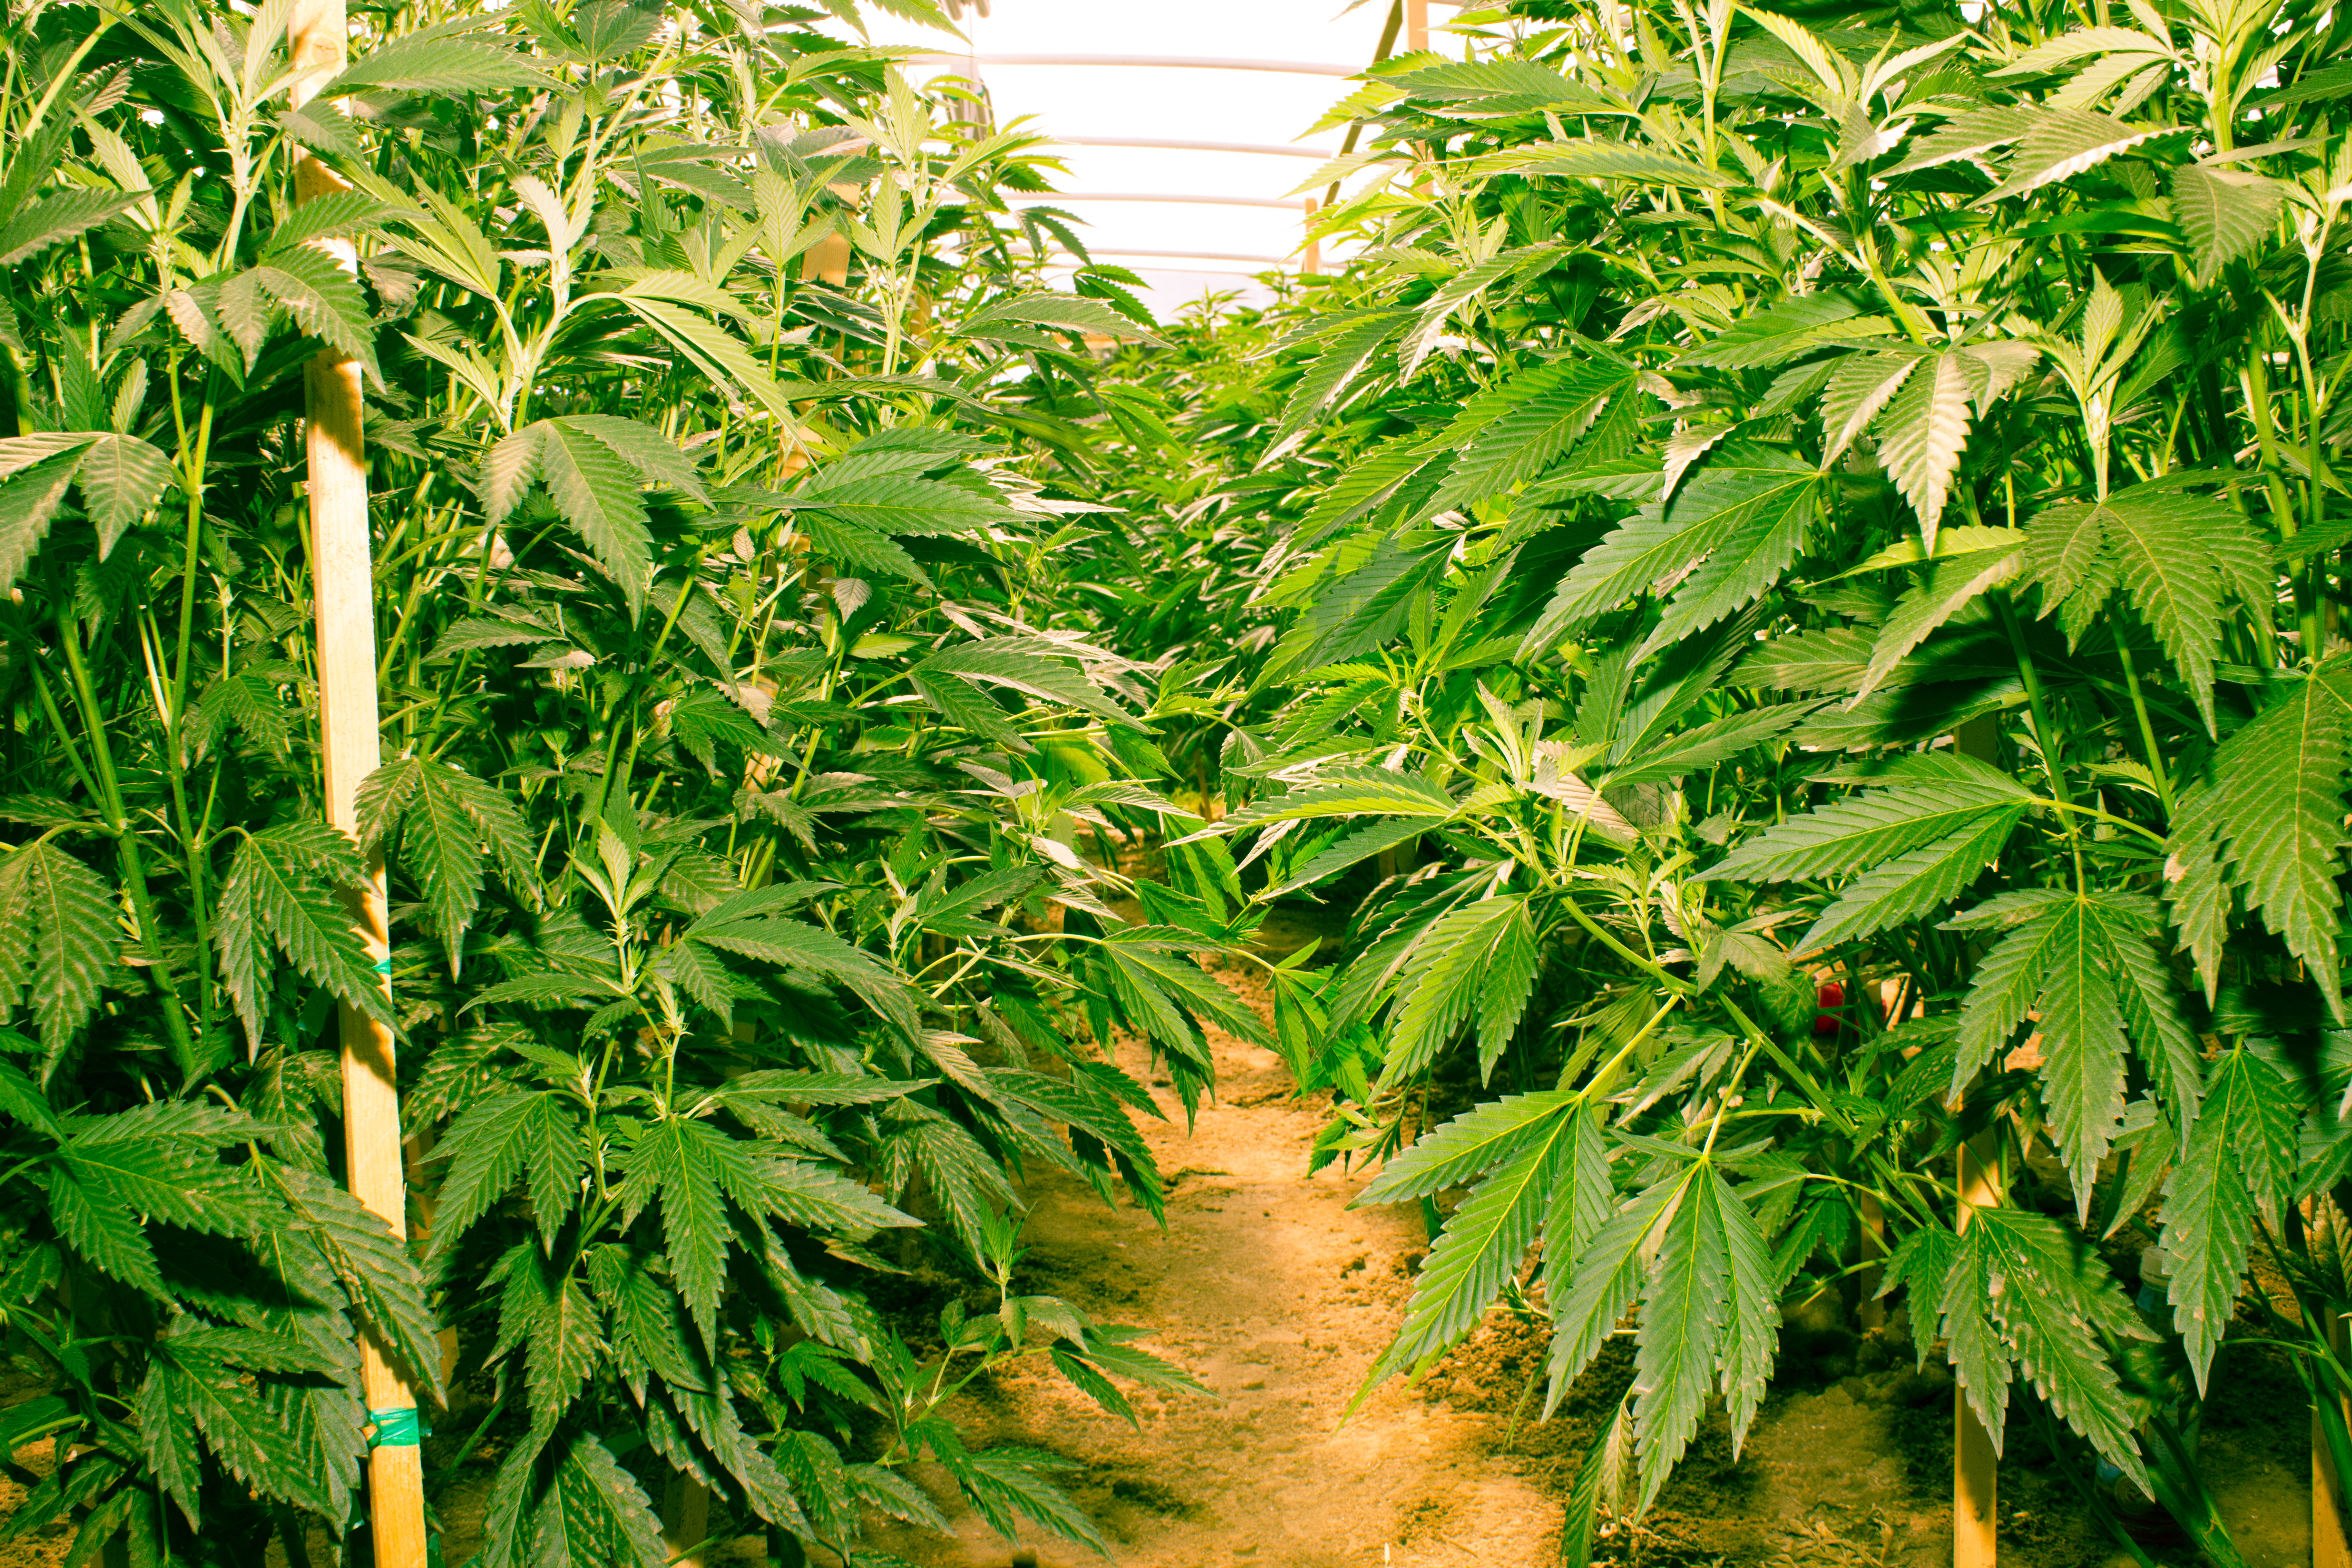 Supreme's 7Acres begins growing Wappa in new facility